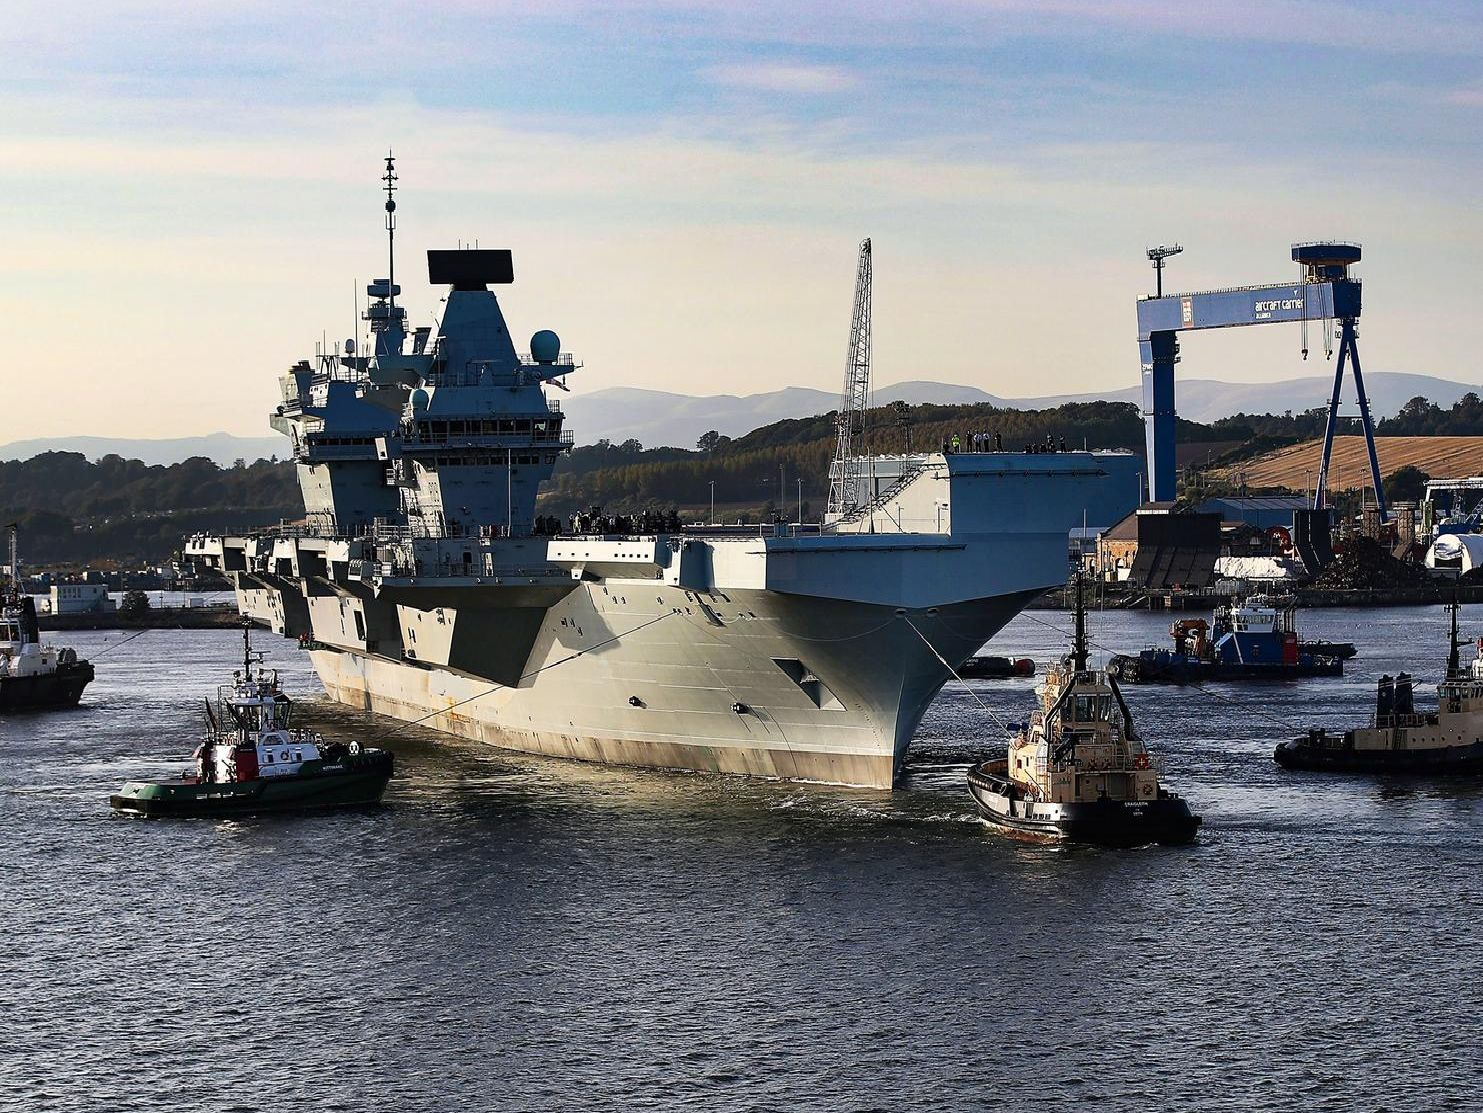 HMS Prince of Wales leaves her birthplace Rosyth, Scotland. She will sail to anchor where she will conduct contractor trials until she sails to her homeport of Portsmouth.